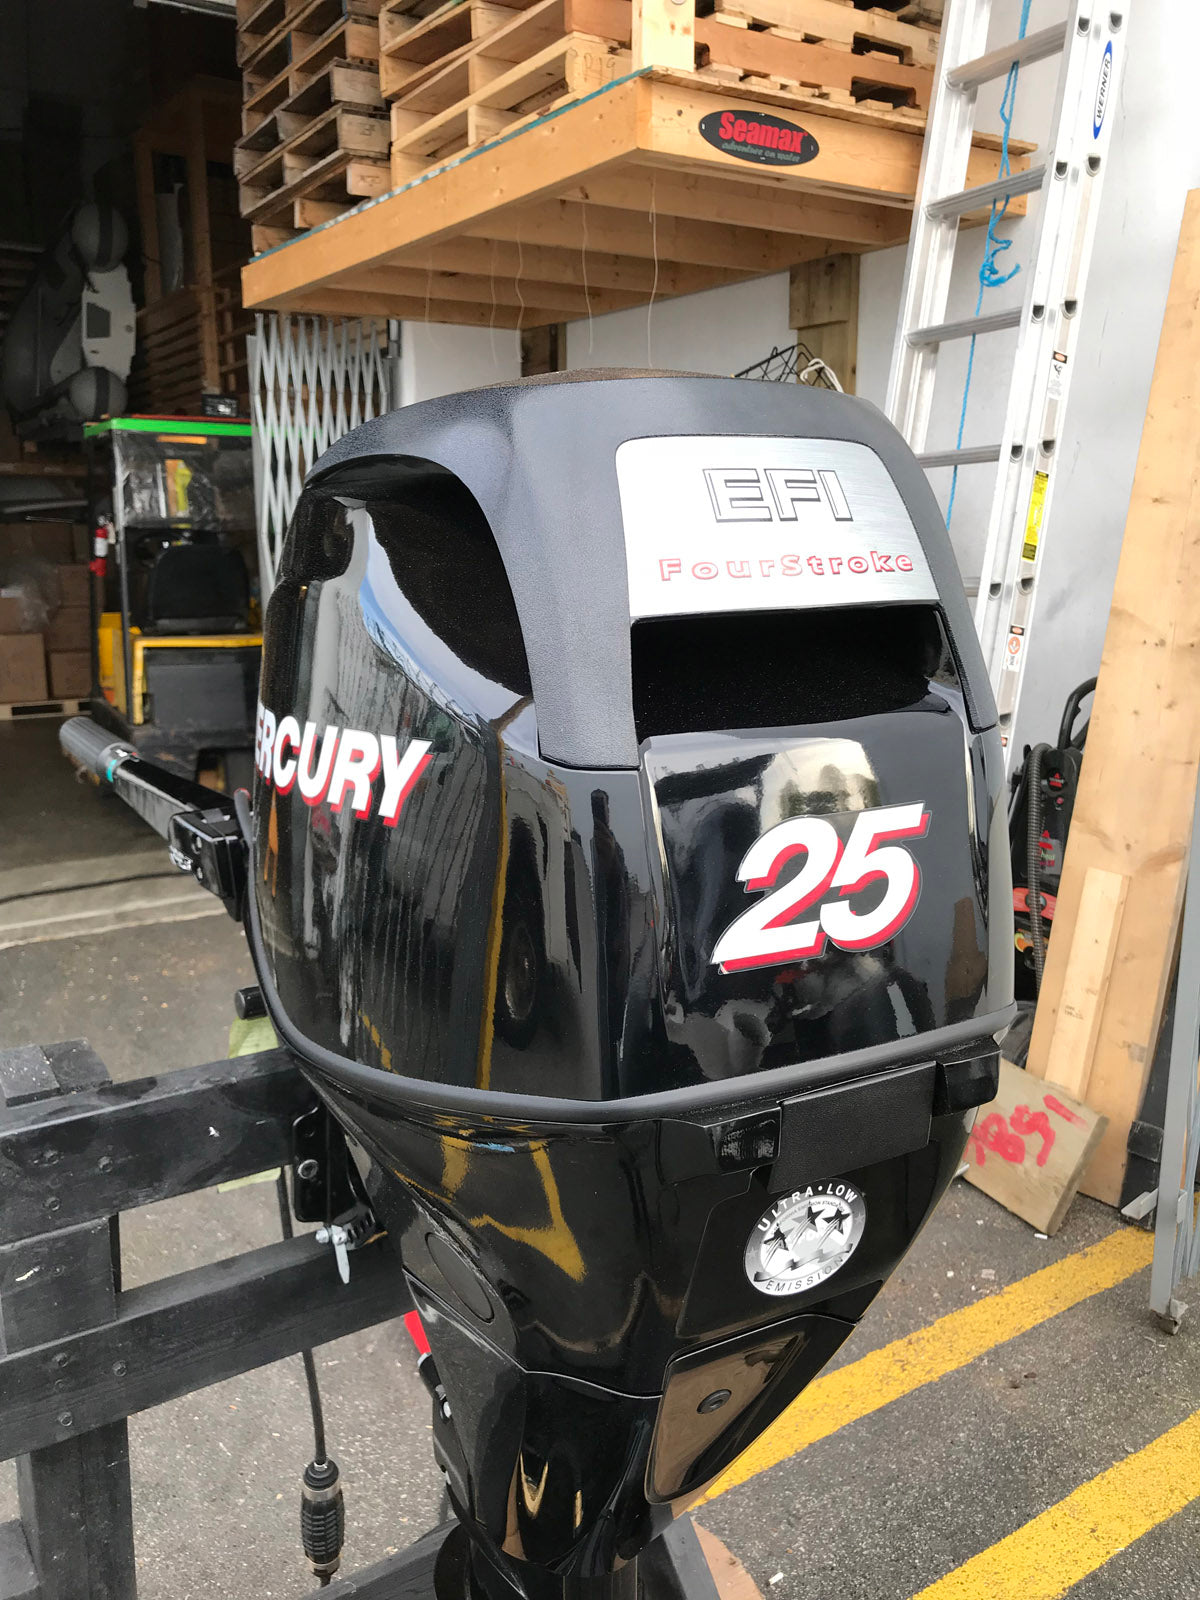 Mercury 25 HP Portable 4 Stroke Outboard Motor, Manual Start - Like New  Warehouse Deal